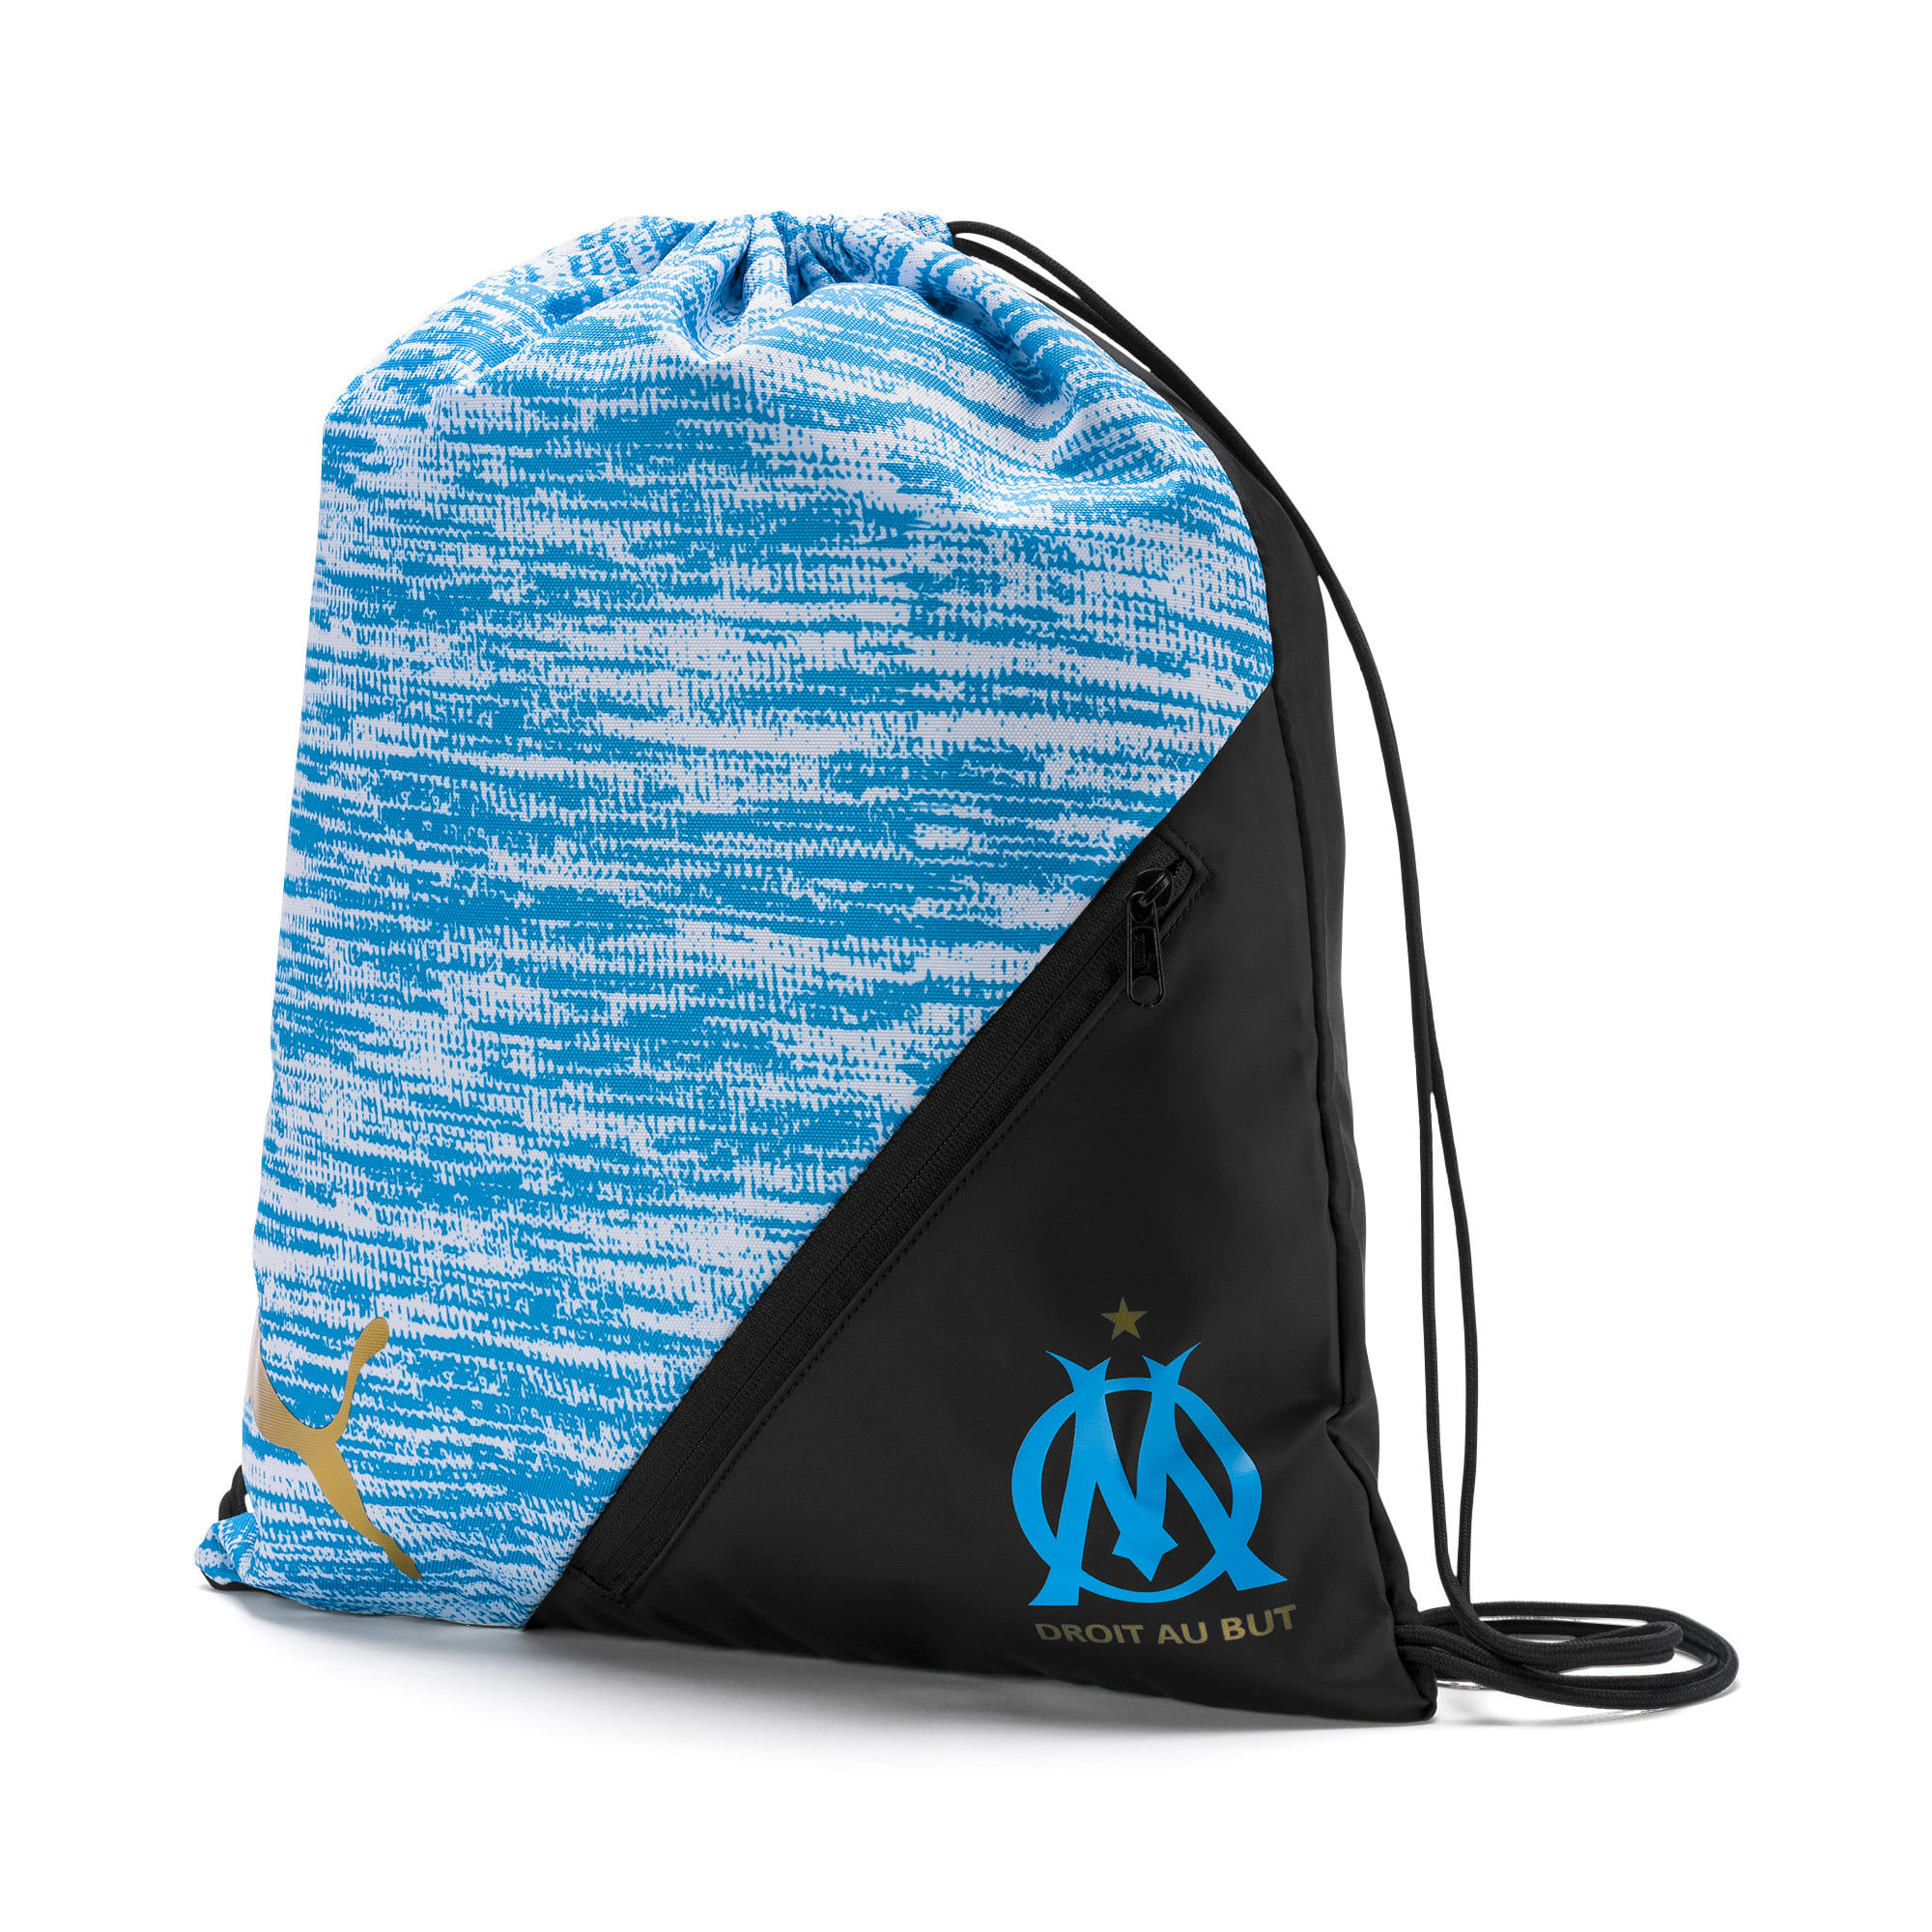 Thumbnail 1 of Olympique de Marseille LIGA Gym Bag, AZURE BLUE-Puma Black, medium